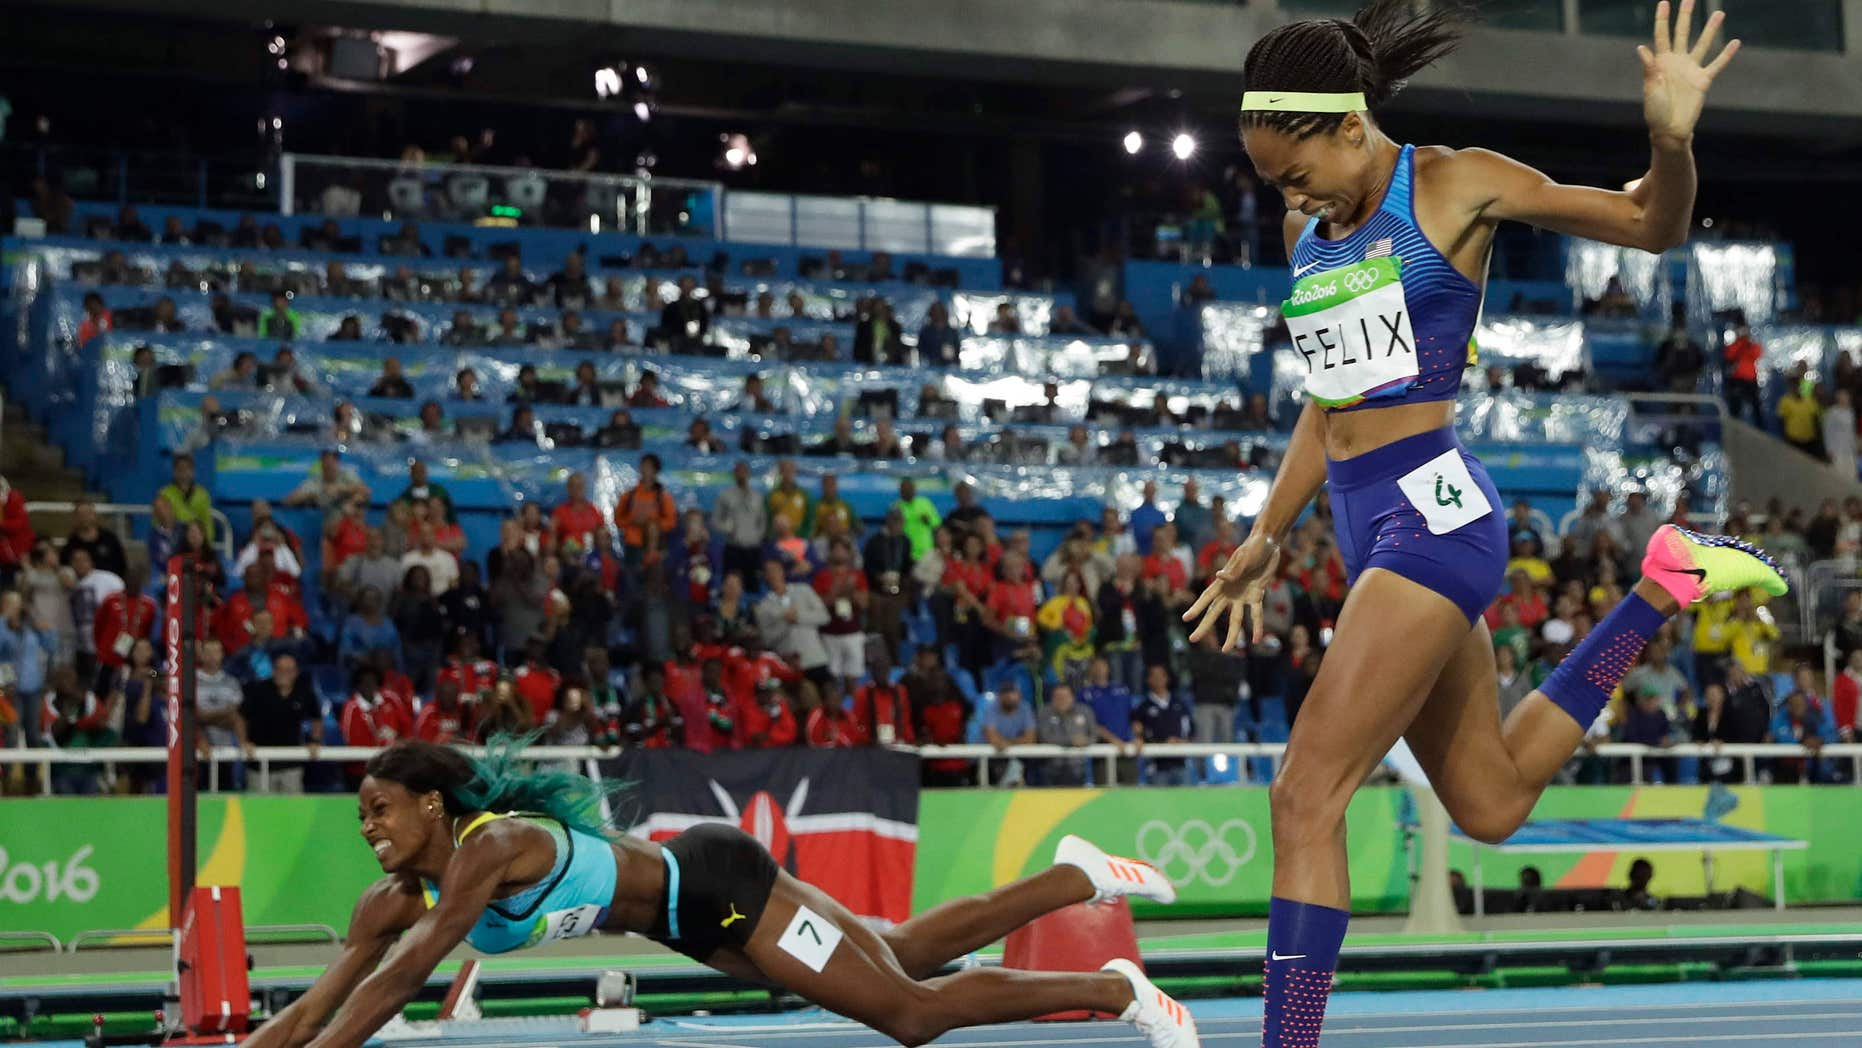 Bahamas' Shaunae Miller dives head first to win gold in 400